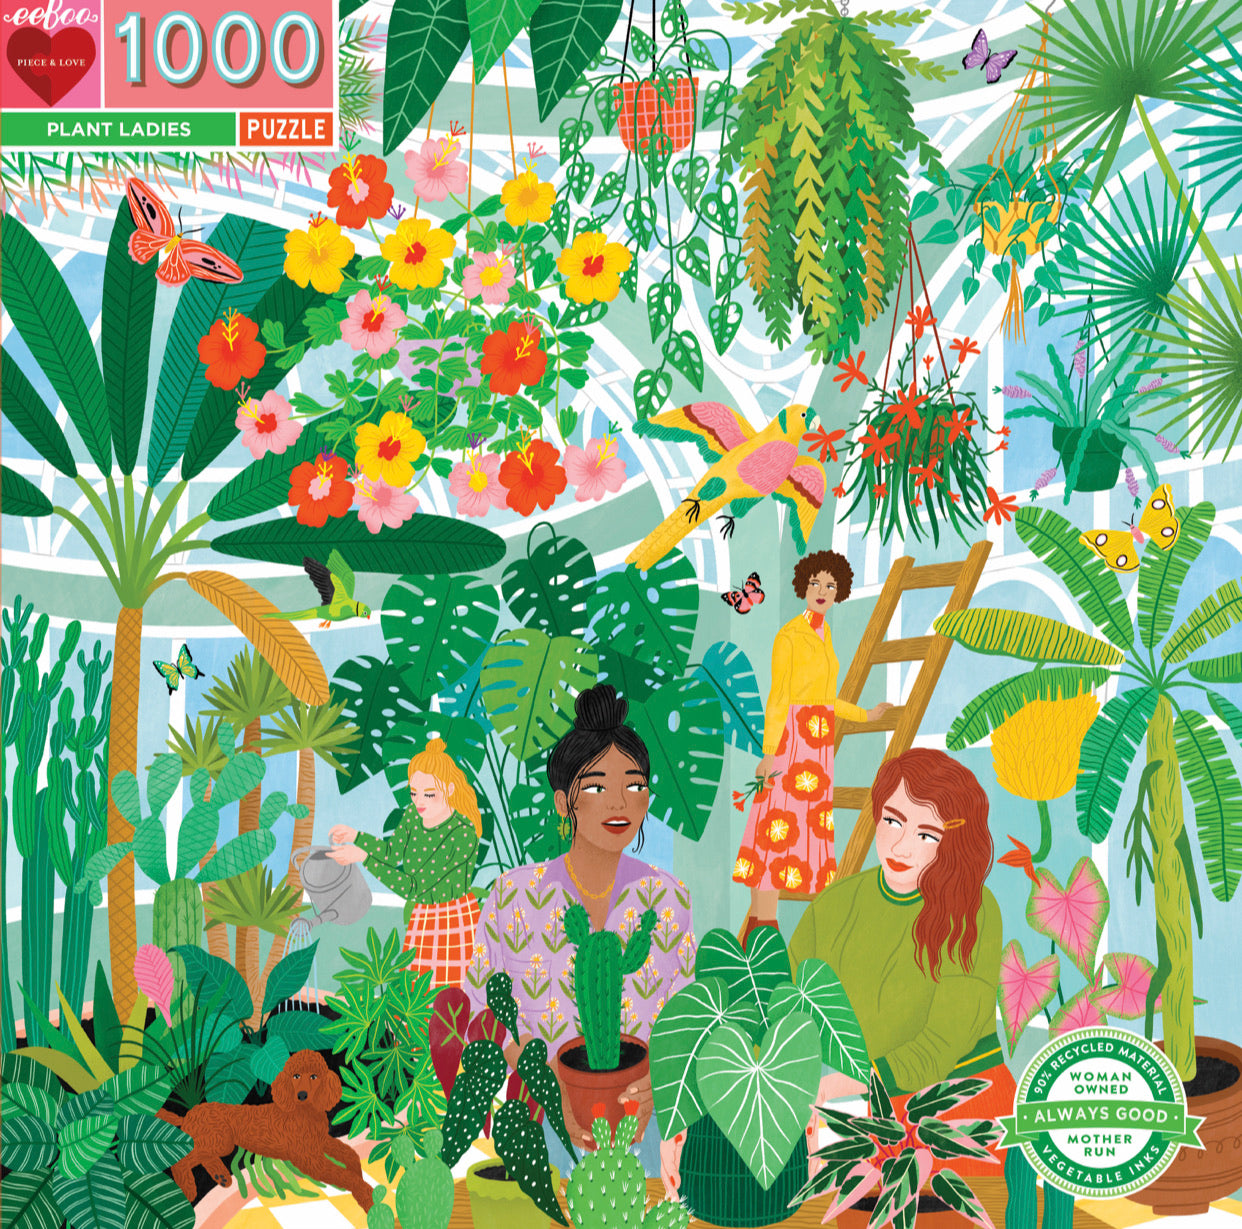 1000 Piece Plant Ladies Puzzle